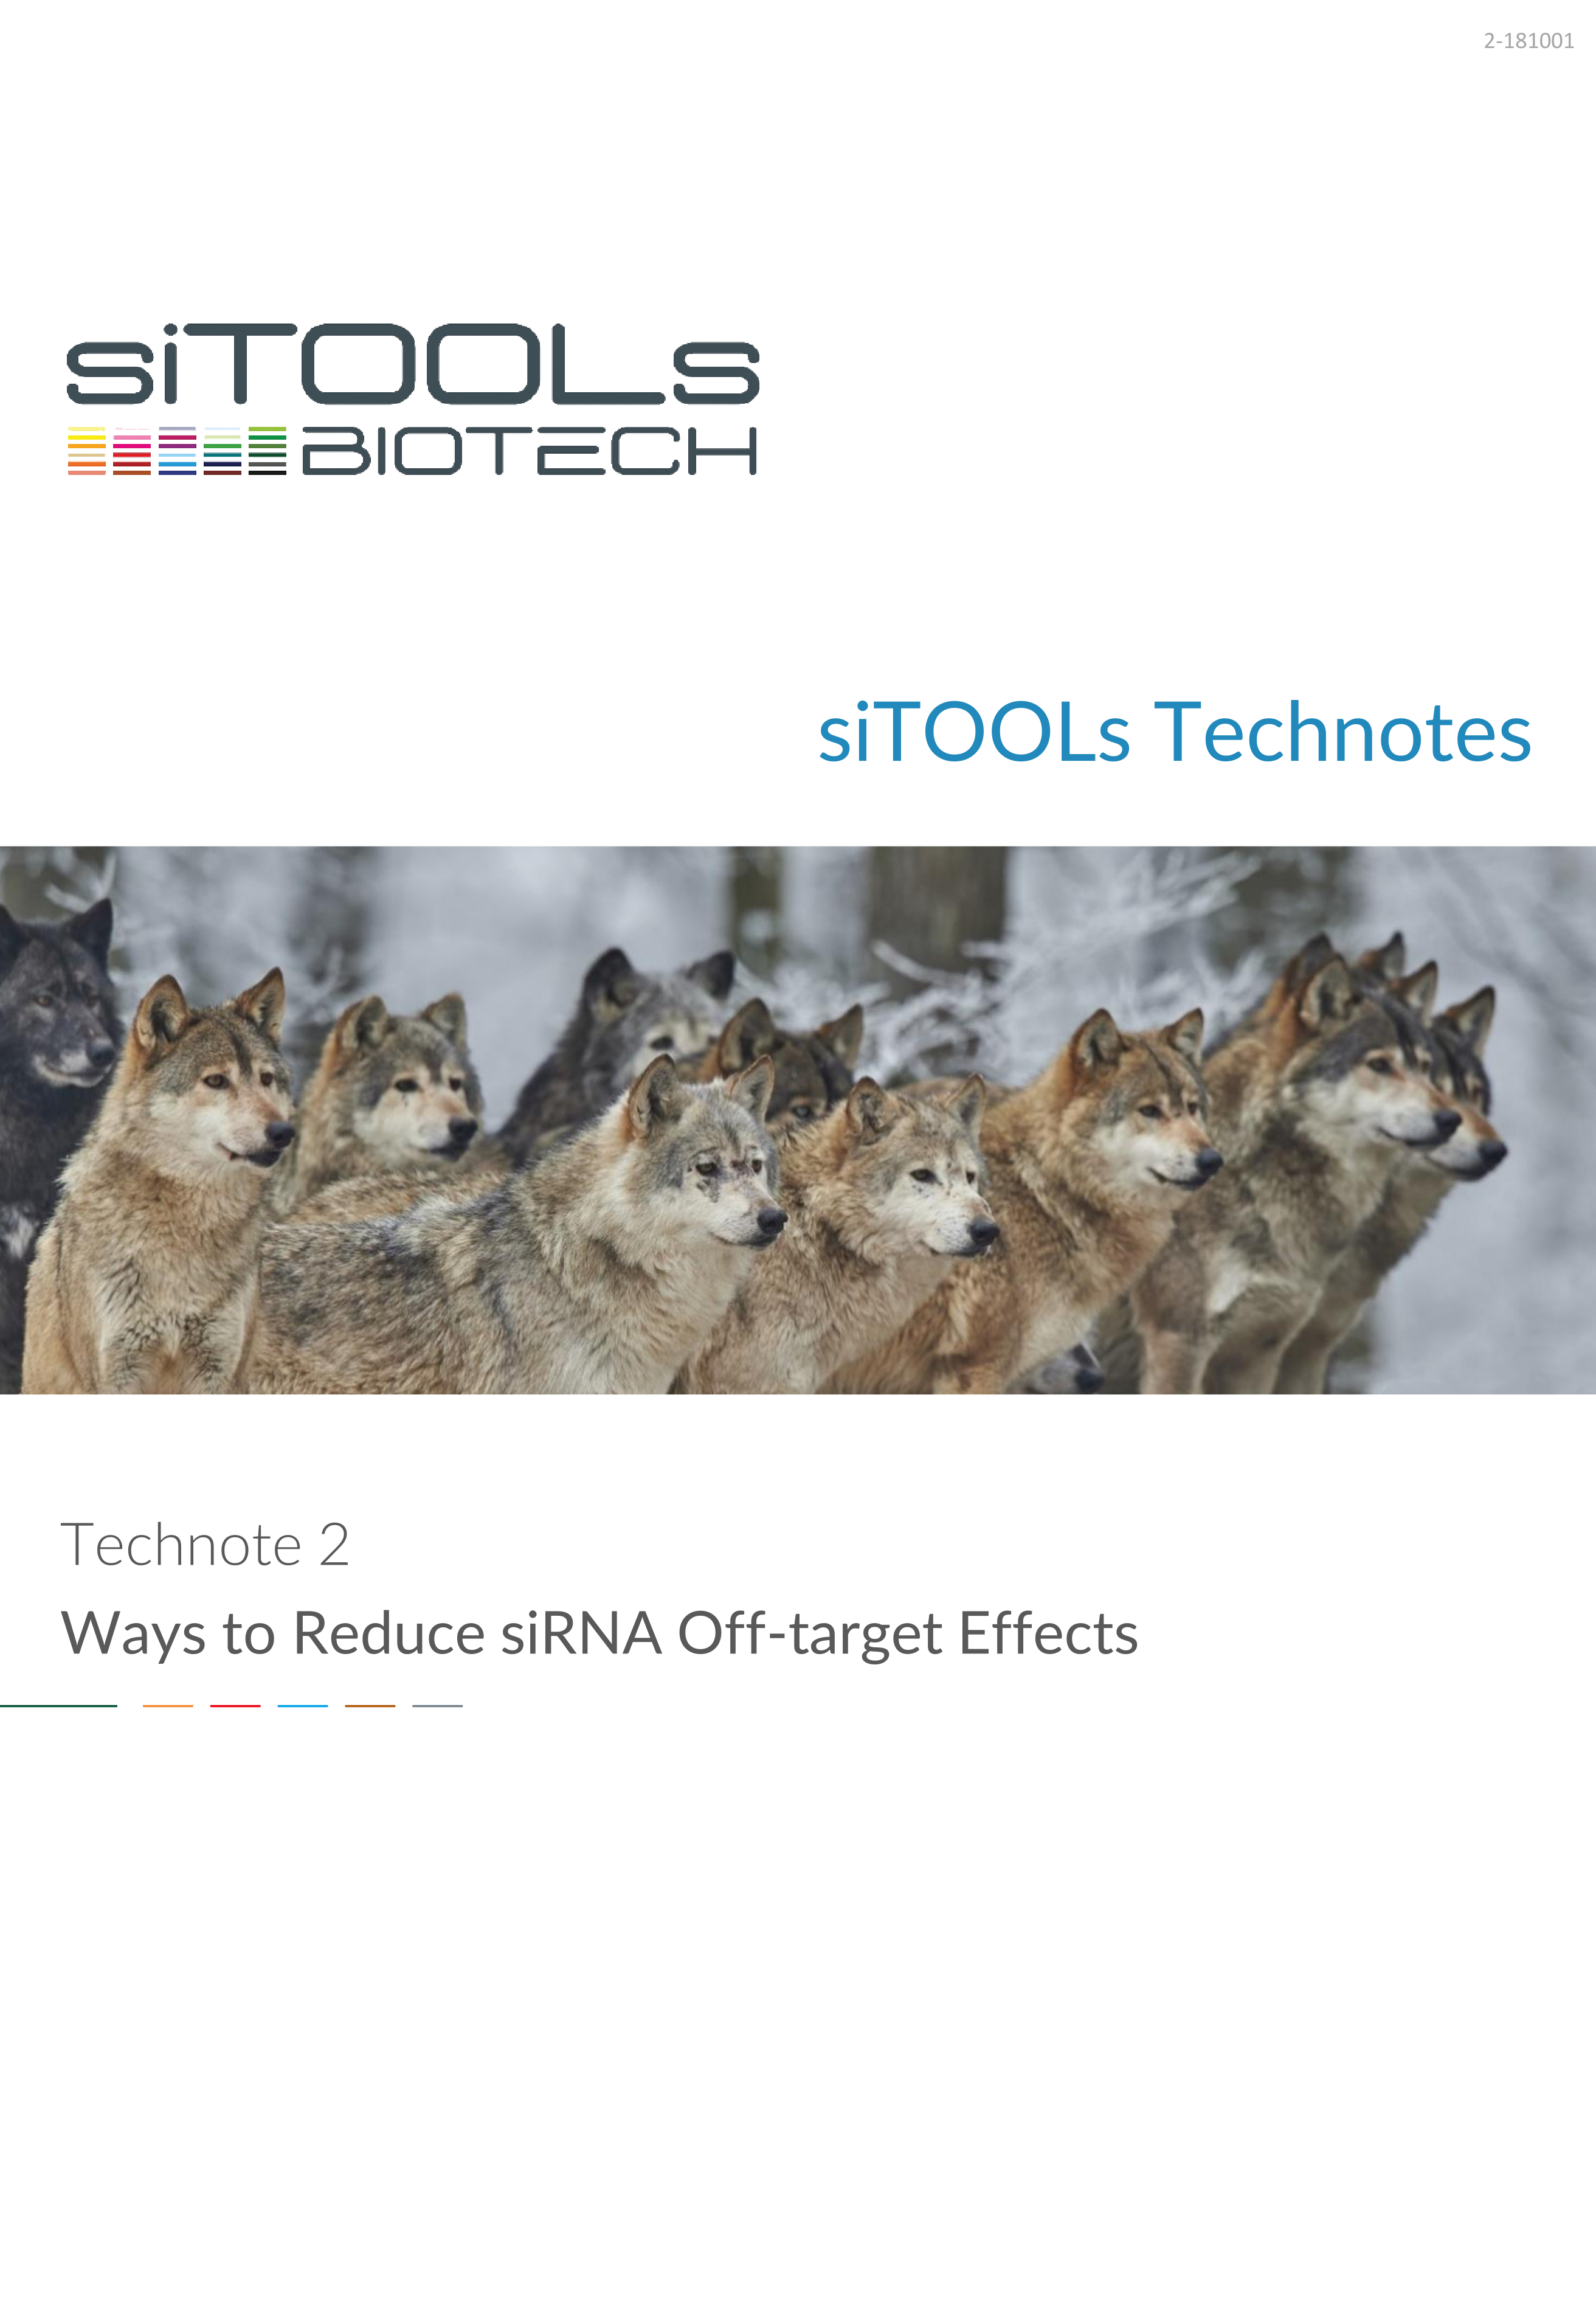 Technote 2-181001 - Ways to Reduce siRNA Off-target Effects